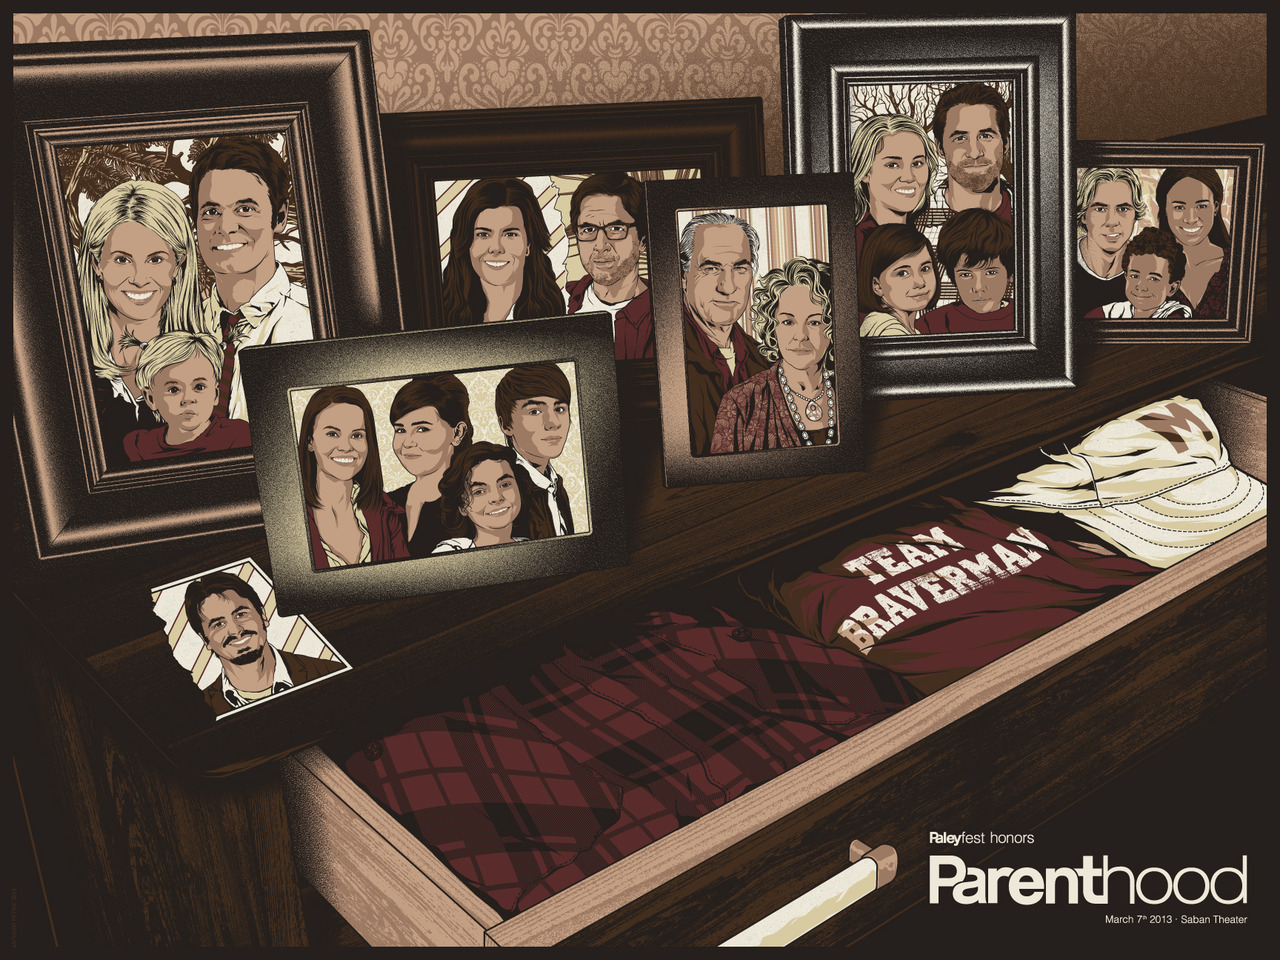 parenthood paleyfest 2013 promo poster gallery 1988 bleeding shield rare promo hot poster promo